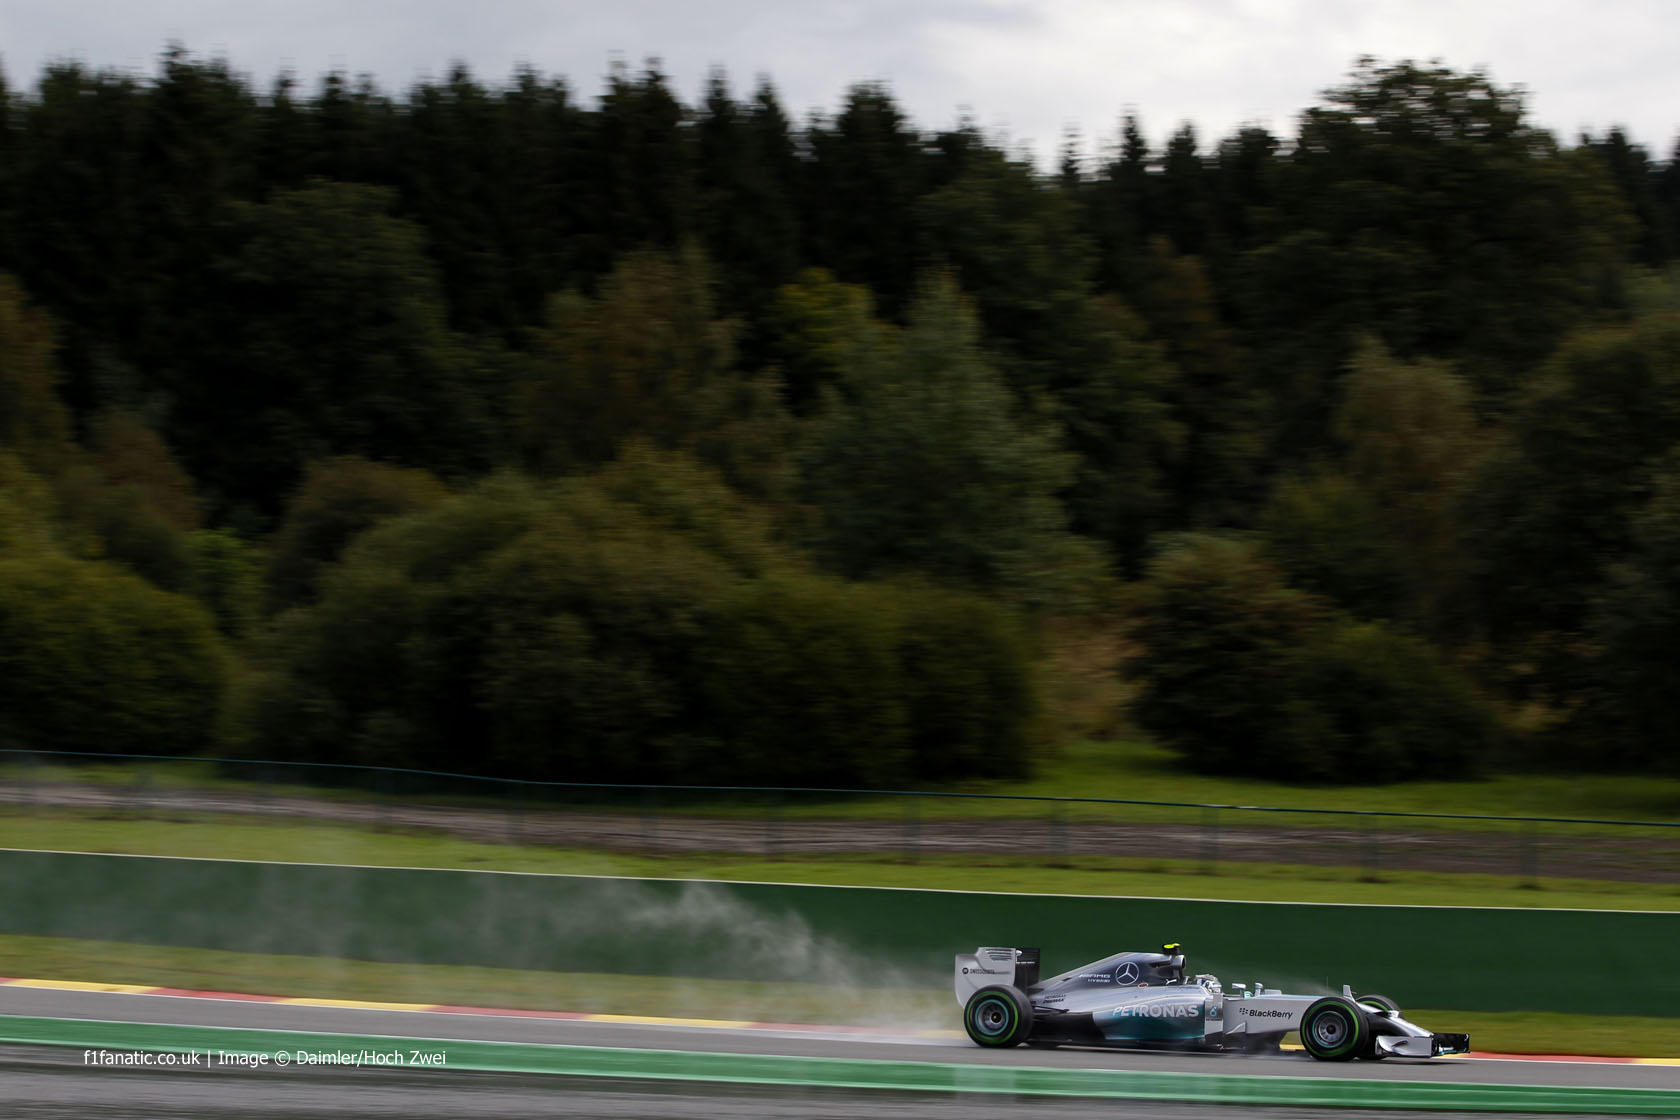 Nico Rosberg, Mercedes, Spa-Francorchamps, 2014